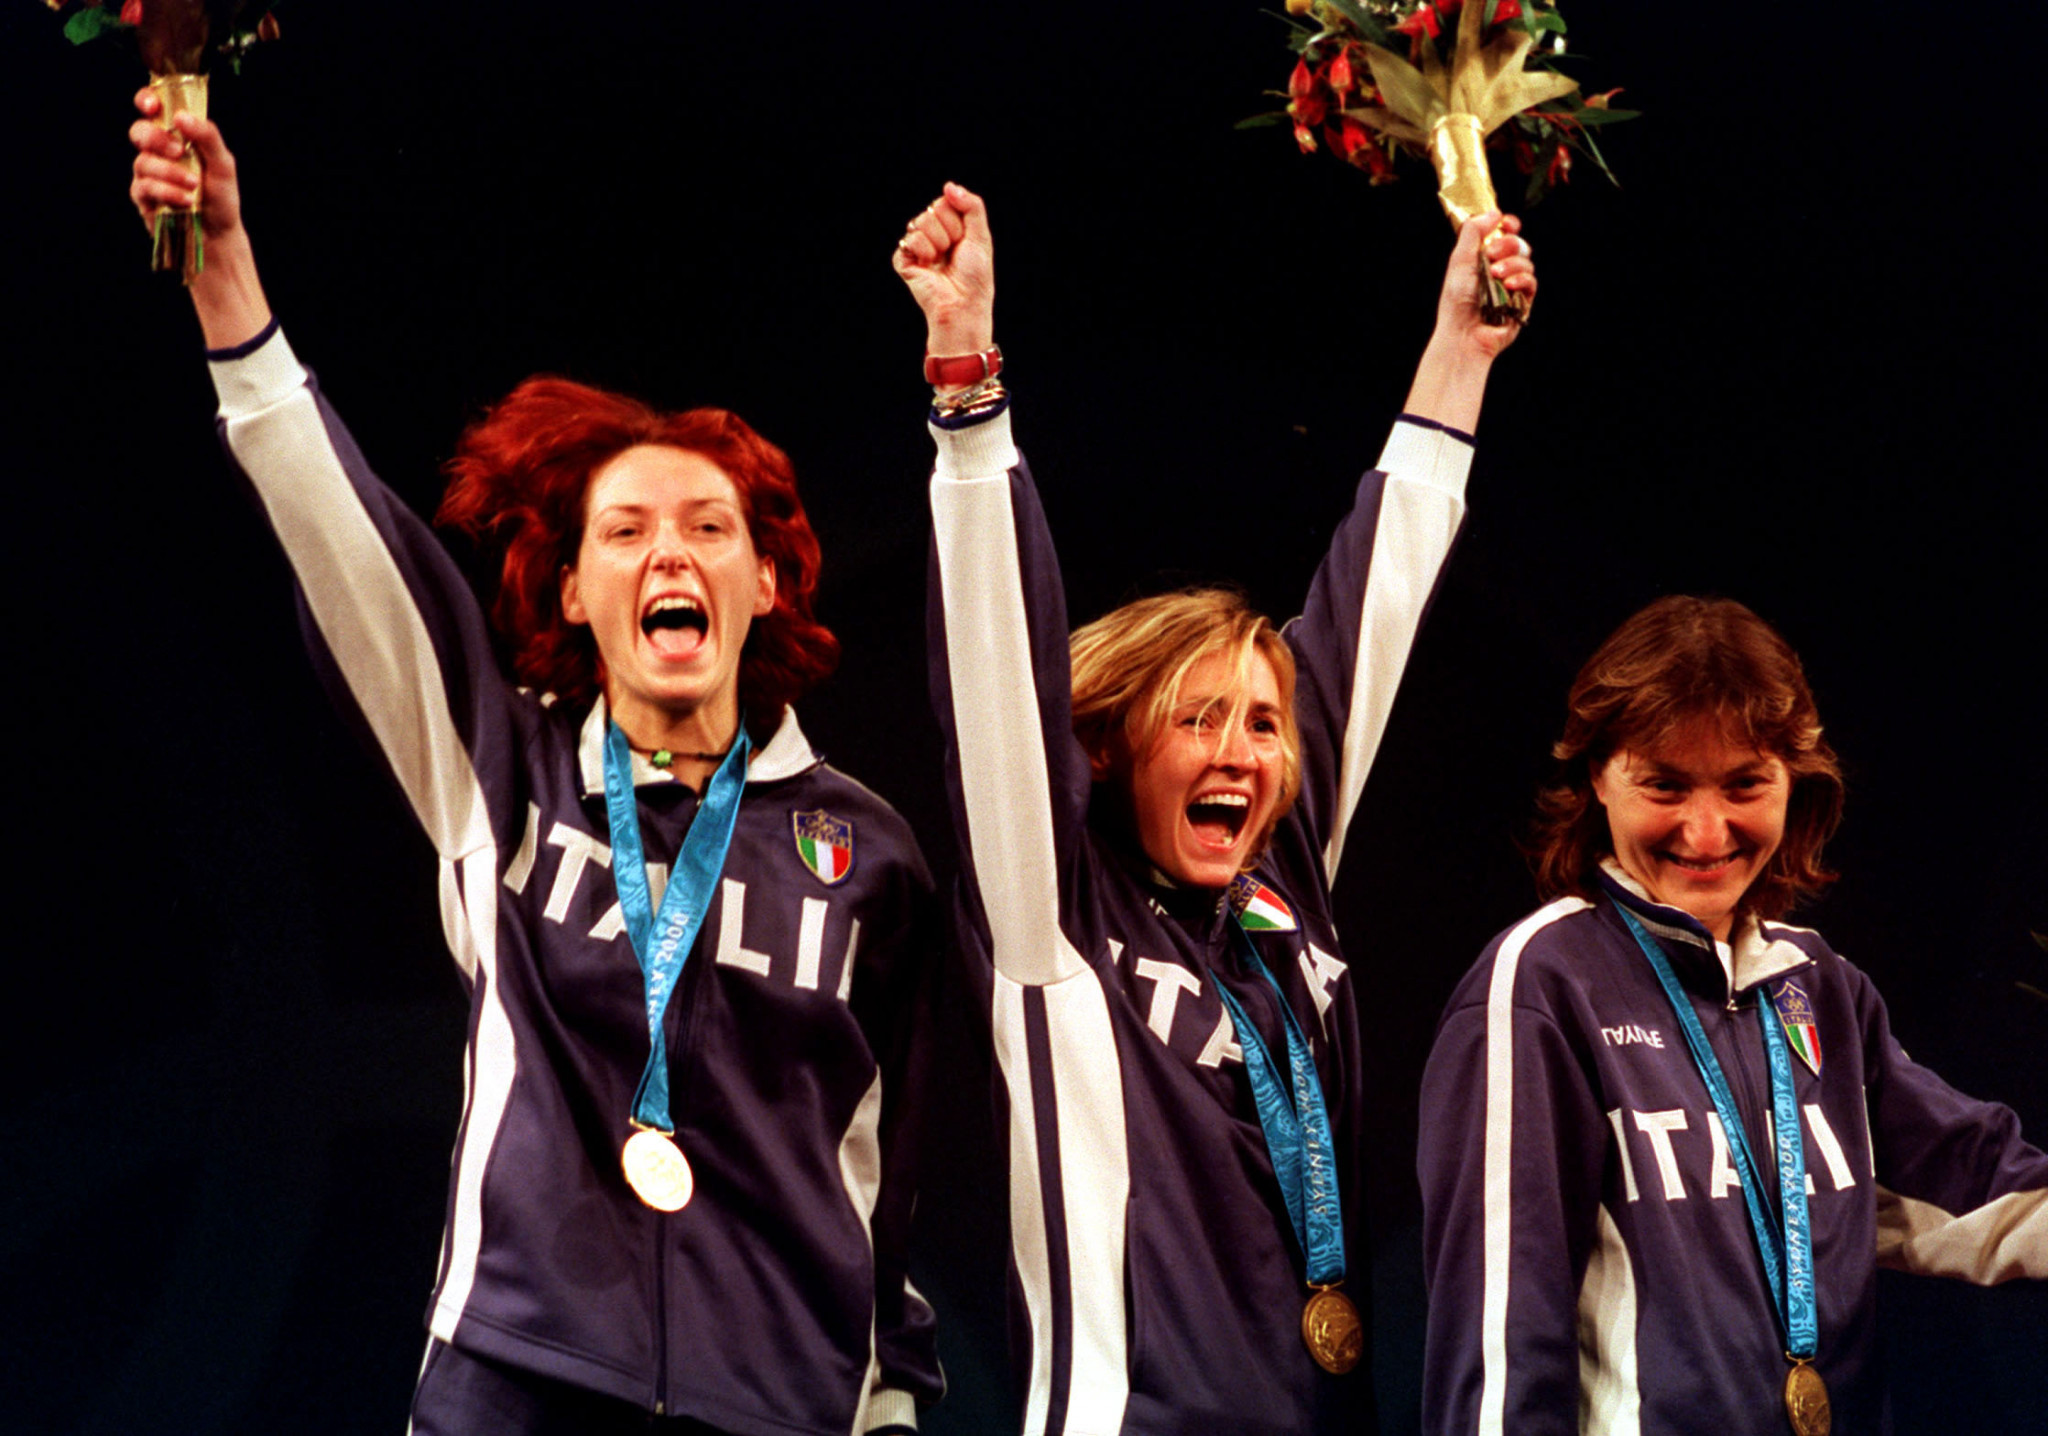 Diana Bianchedi, centre, won the second of her two Olympic women's team foil gold medals at Sydney 2000 ©Getty Images